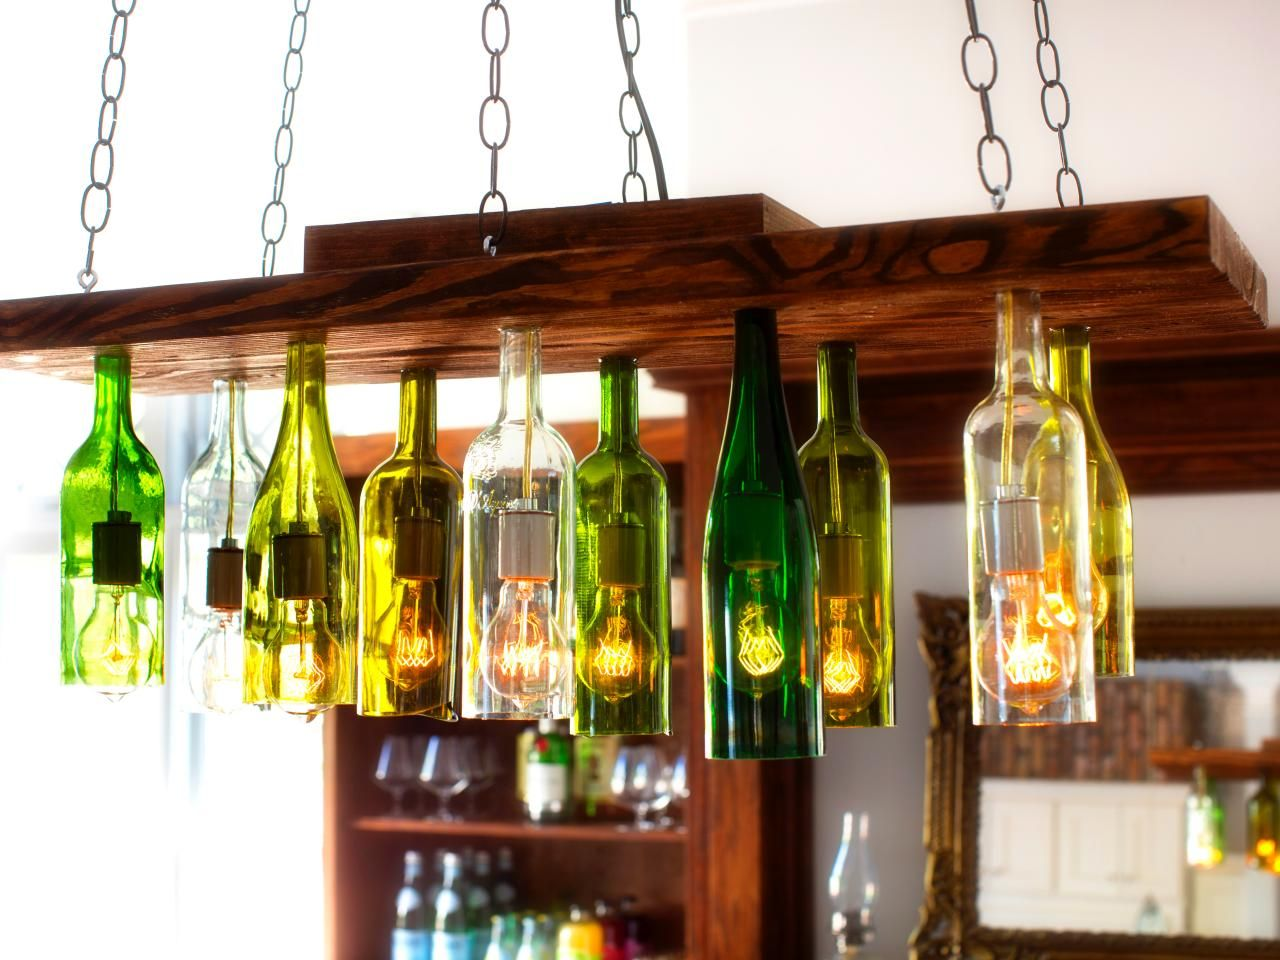 Diy chandeliers that will light up your day chandelier made from upcycled glass bottles aloadofball Images